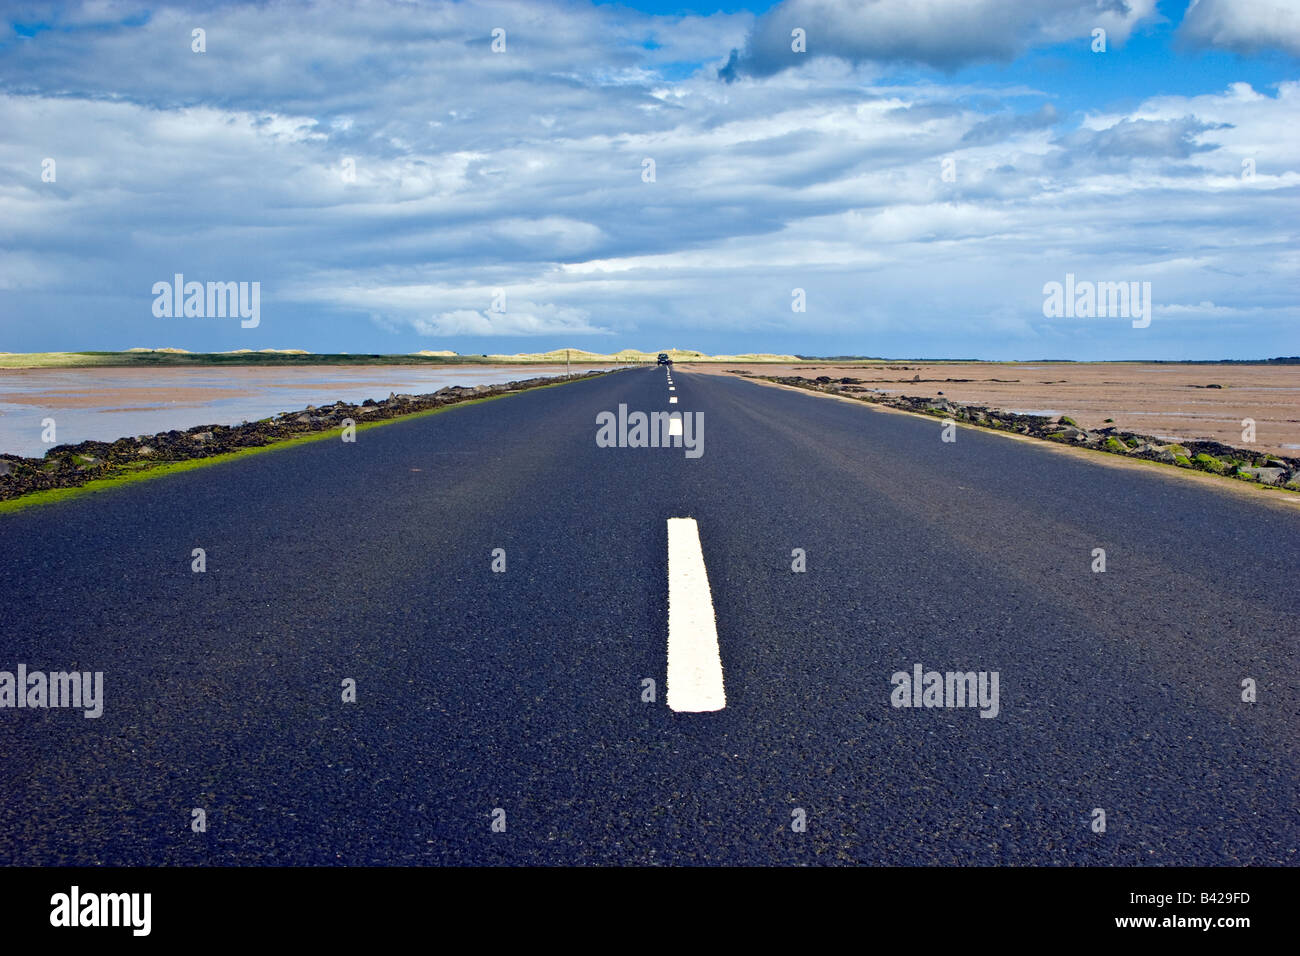 A long straight road stretching out on the Holy Island causeway Northumberland Great Britain UK 2008 Stock Photo